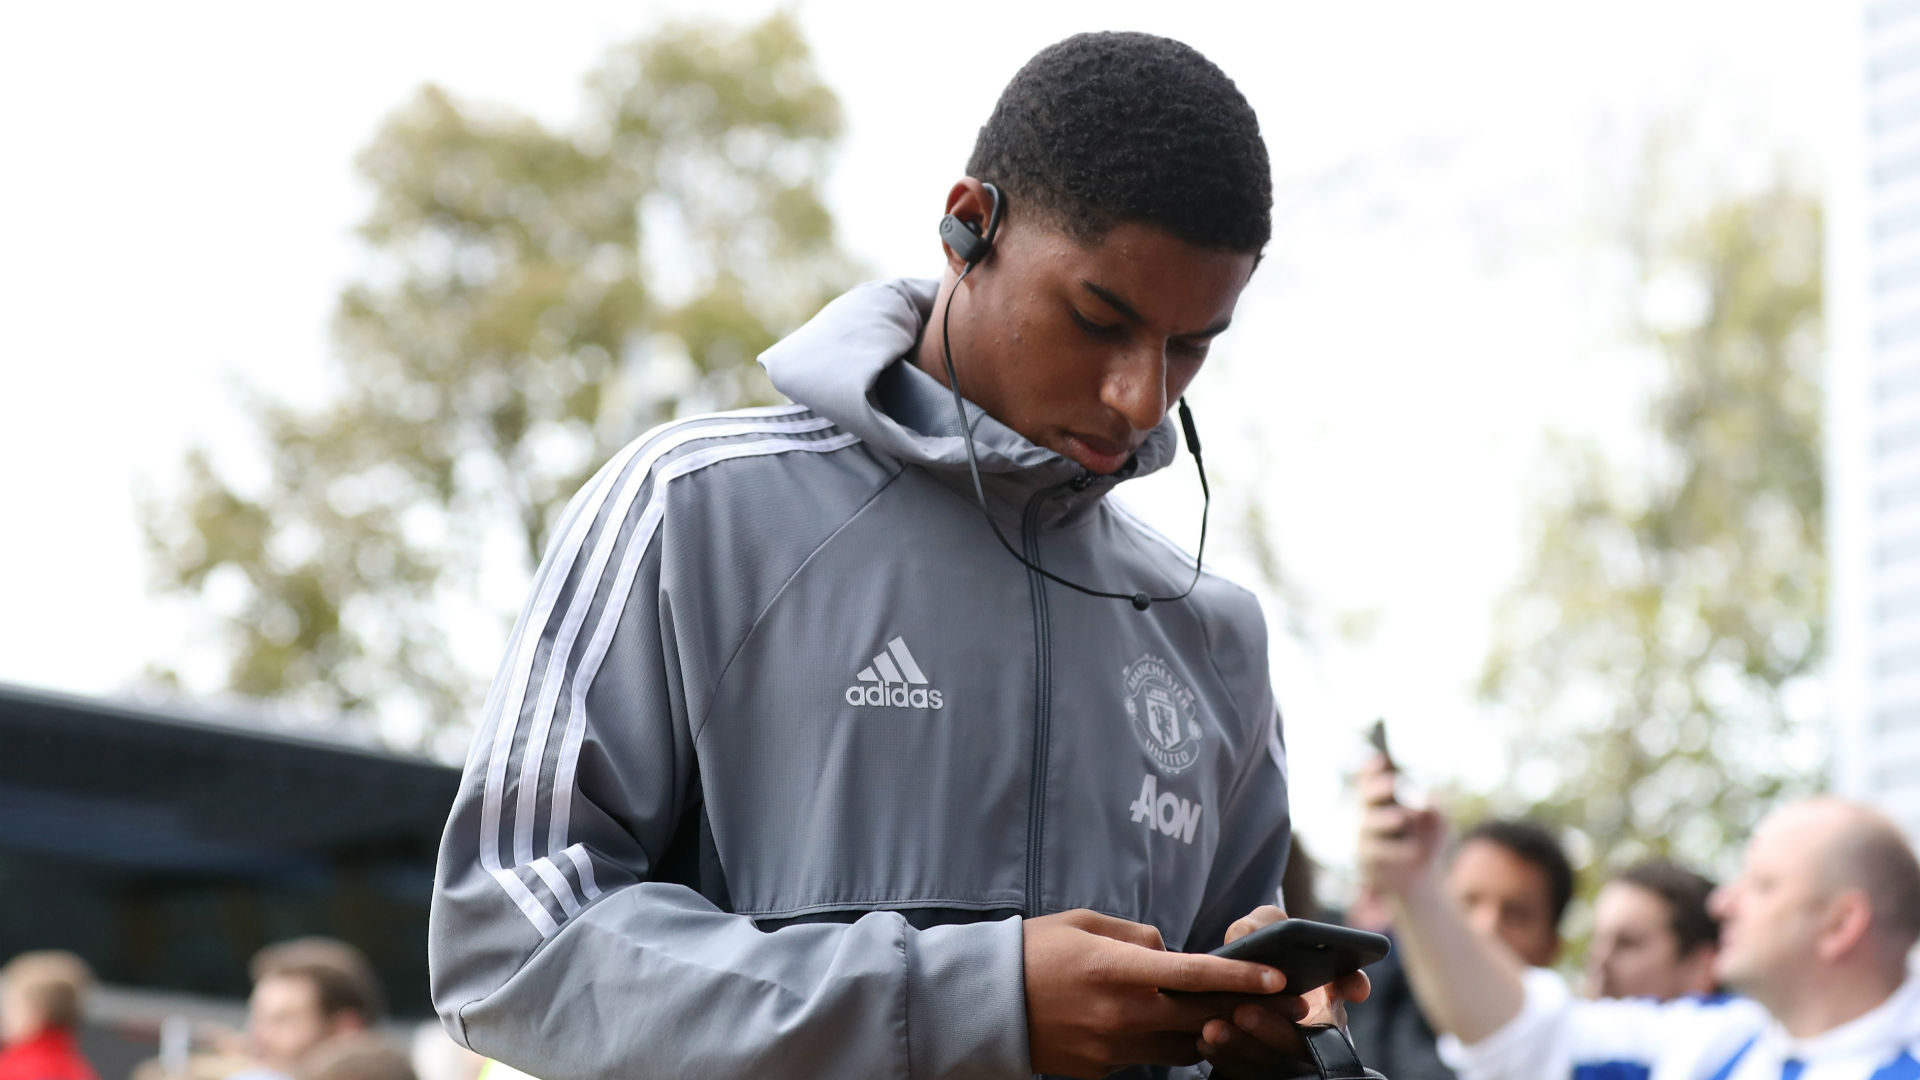 Gary Neville believes Marcus Rashford's situation at Manchester United is not unusual